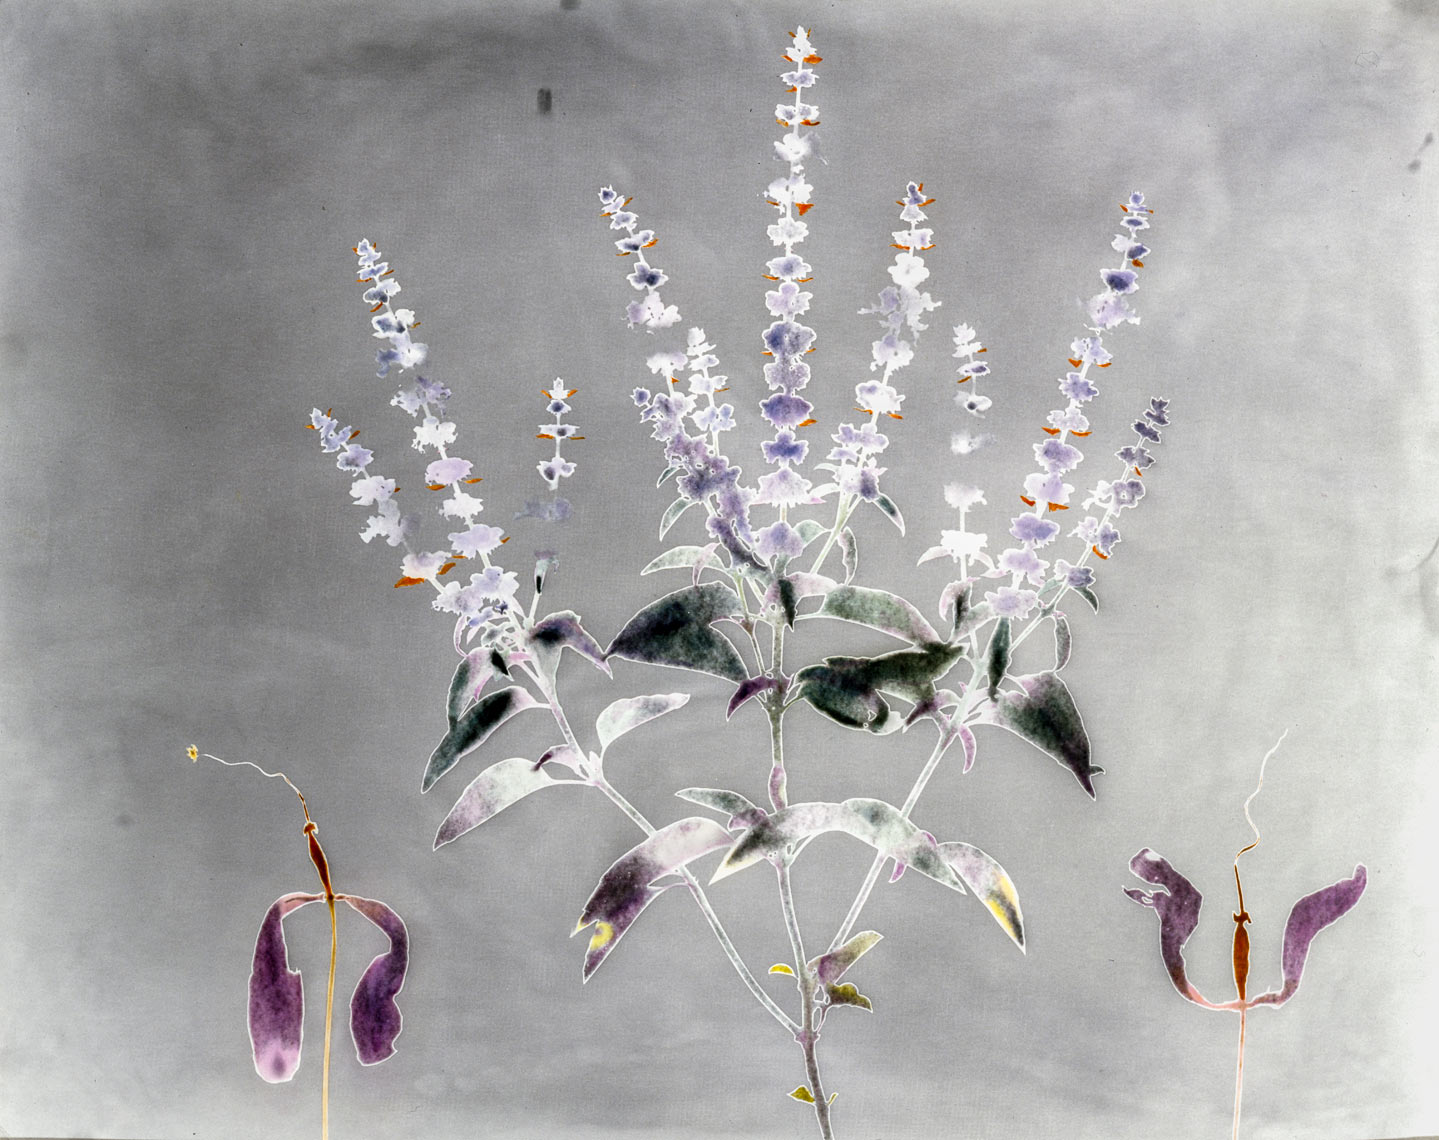 David Lebe; Garden 2, 1979, hand colored photogram